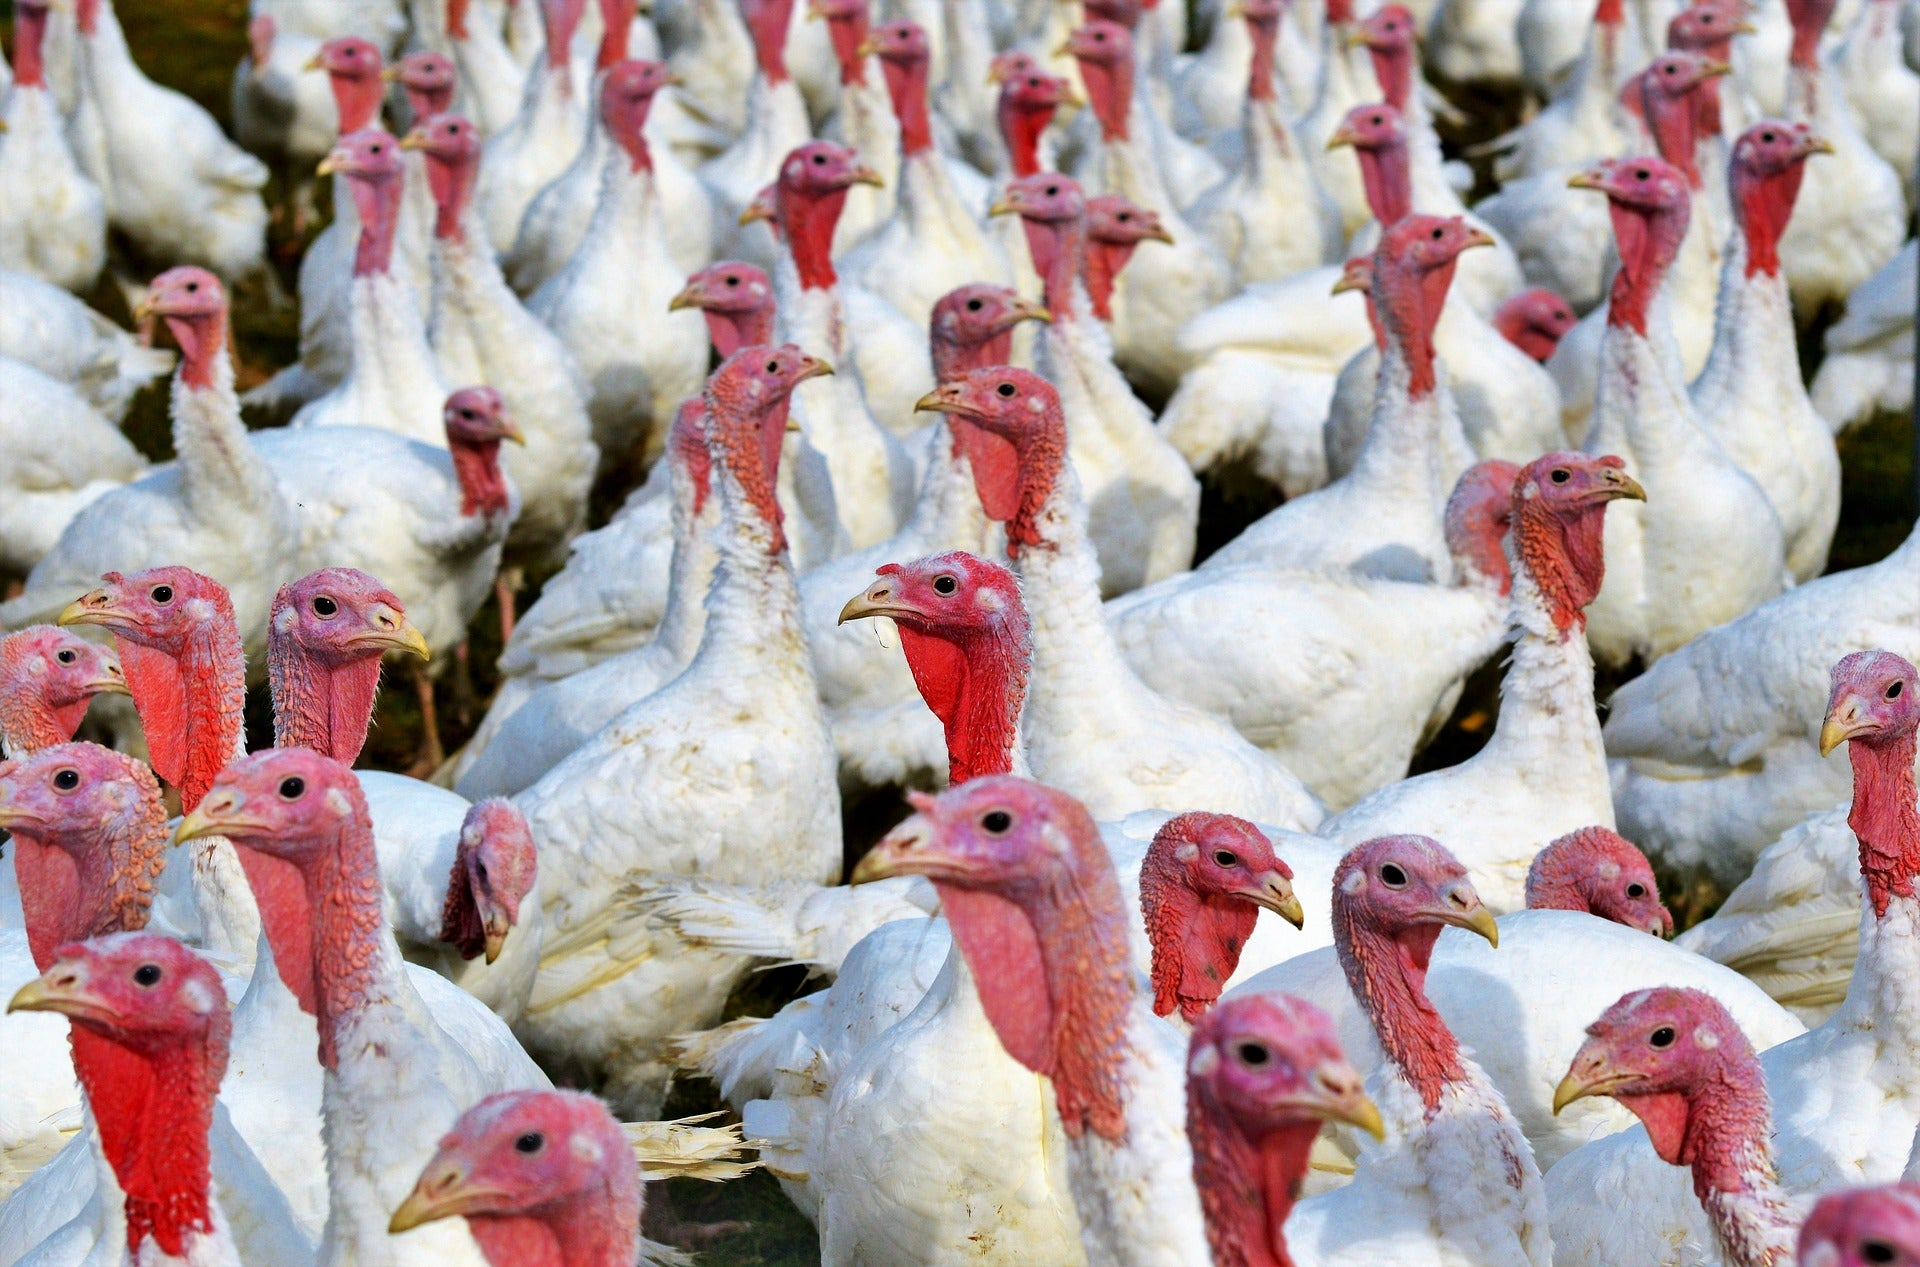 Turkey poop could help save us from ourselves